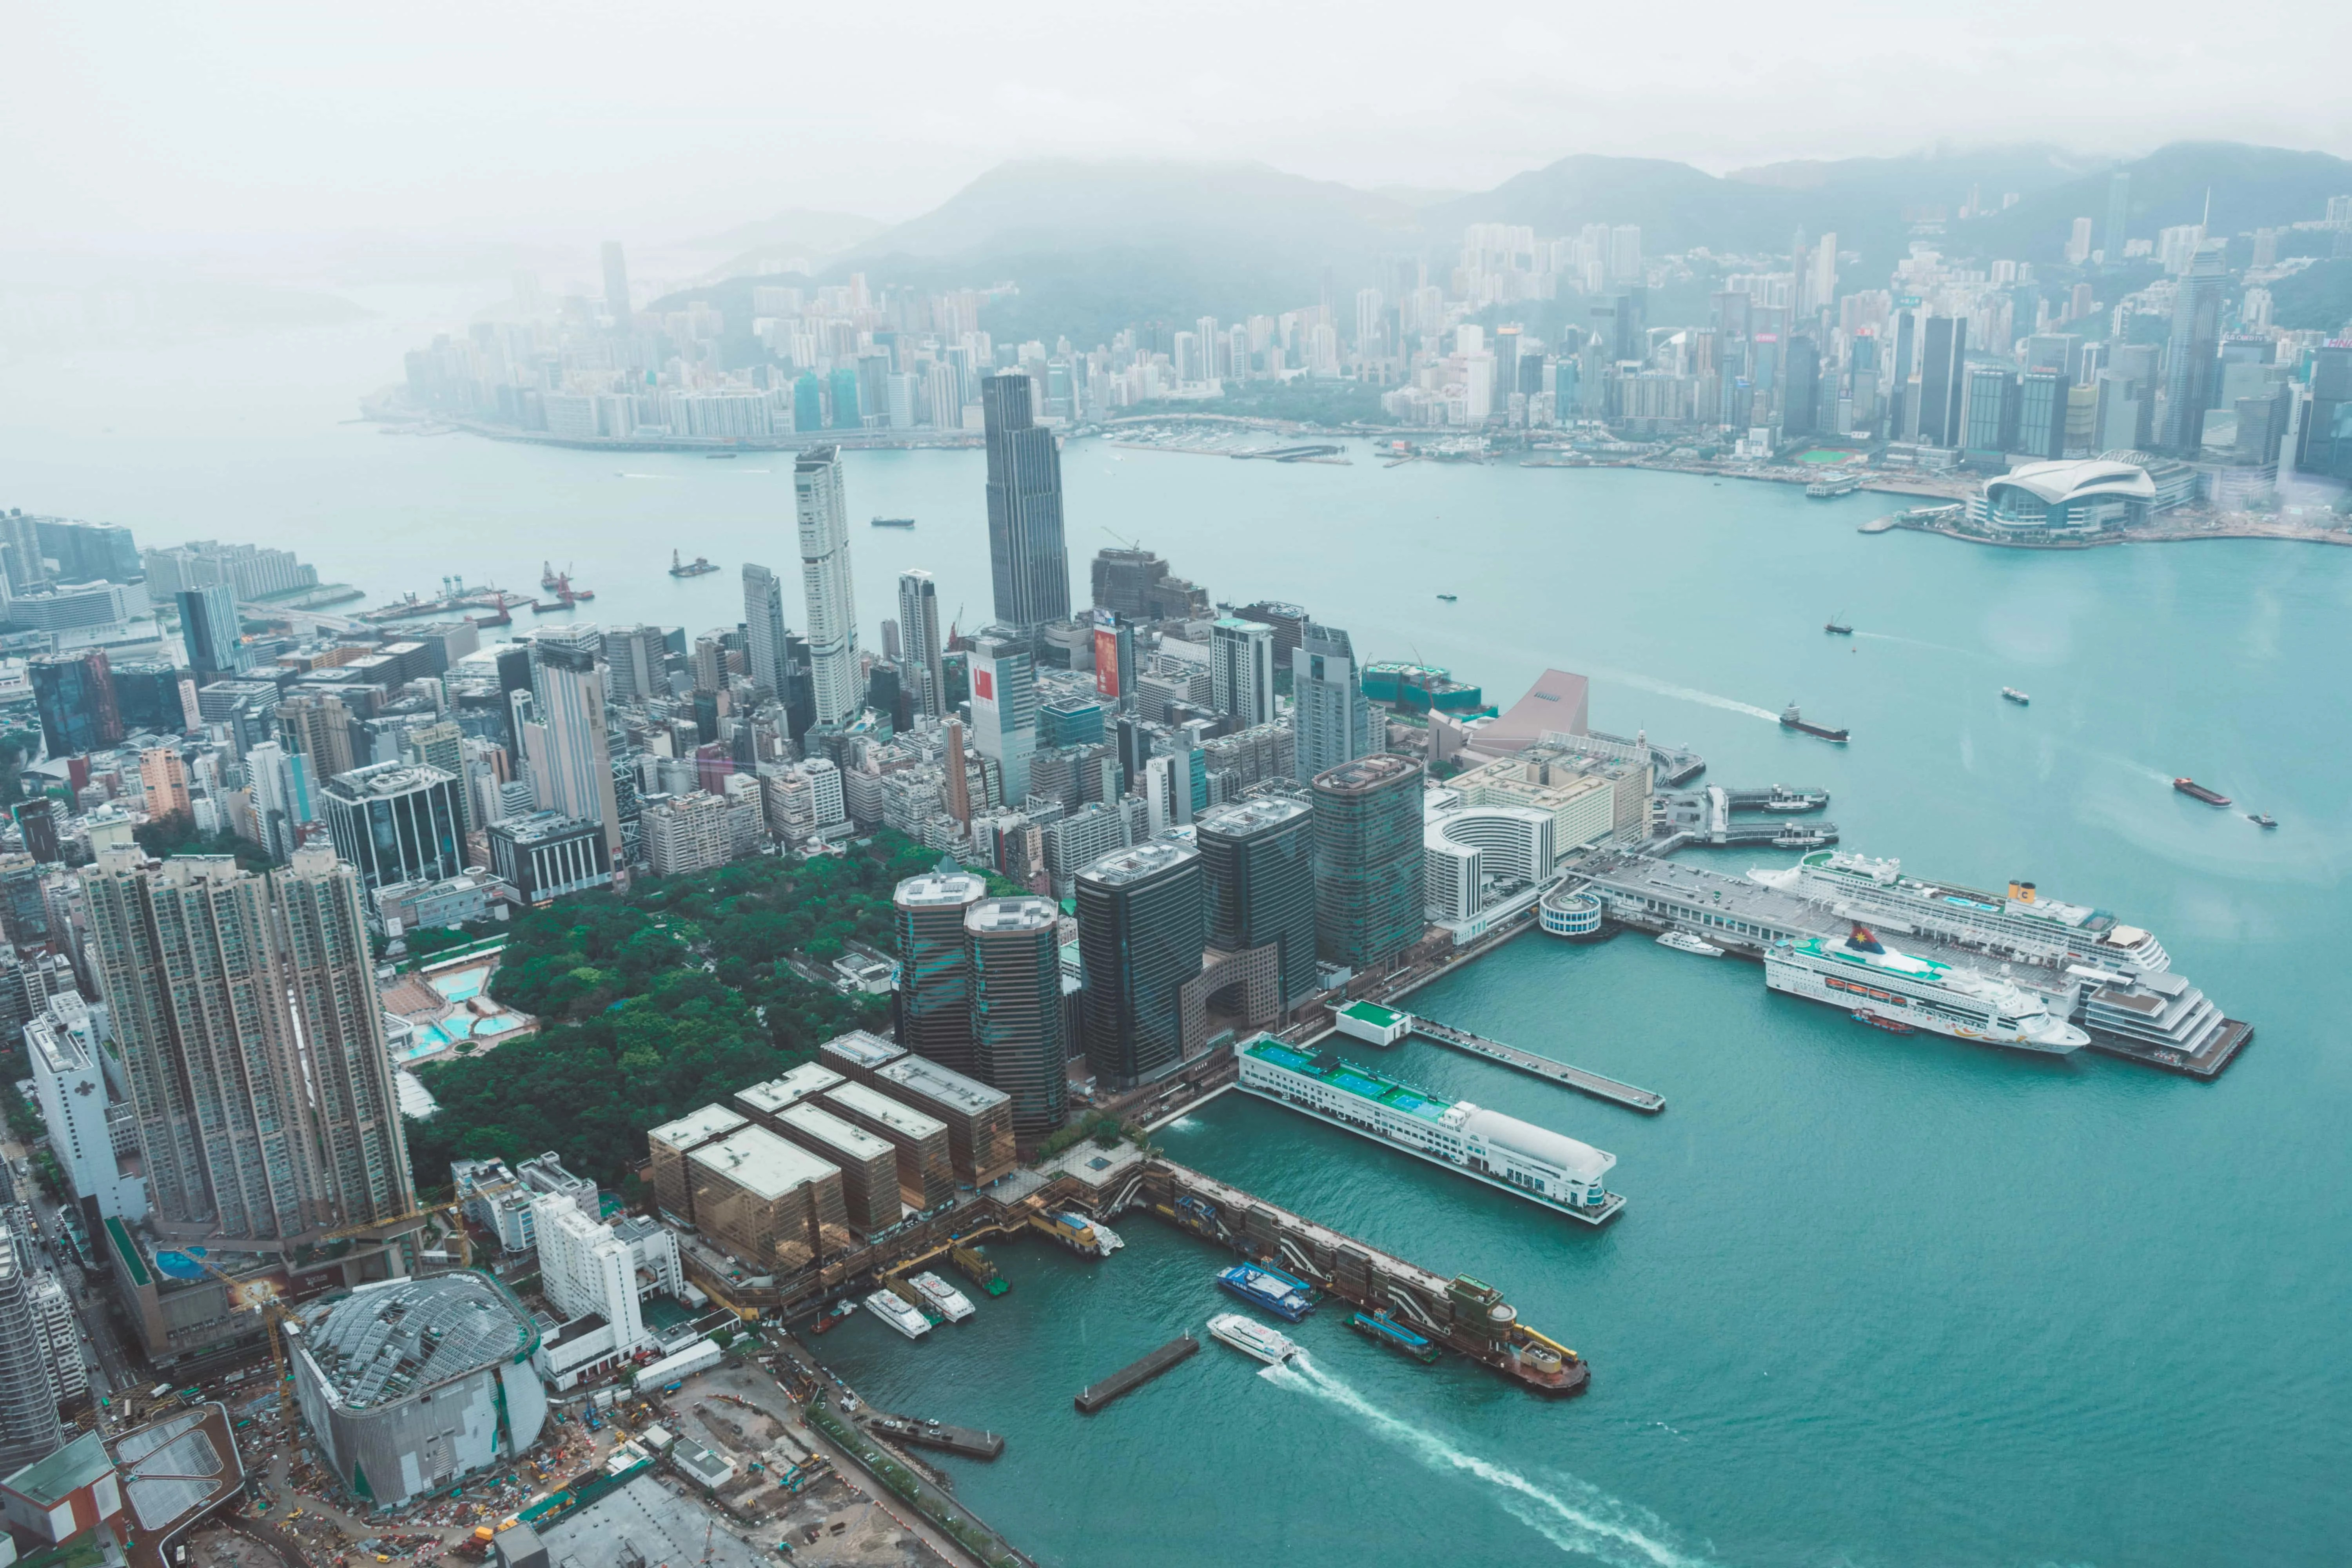 Instagrammable Places in Hong Kong, skyviews from Ritz Carlton